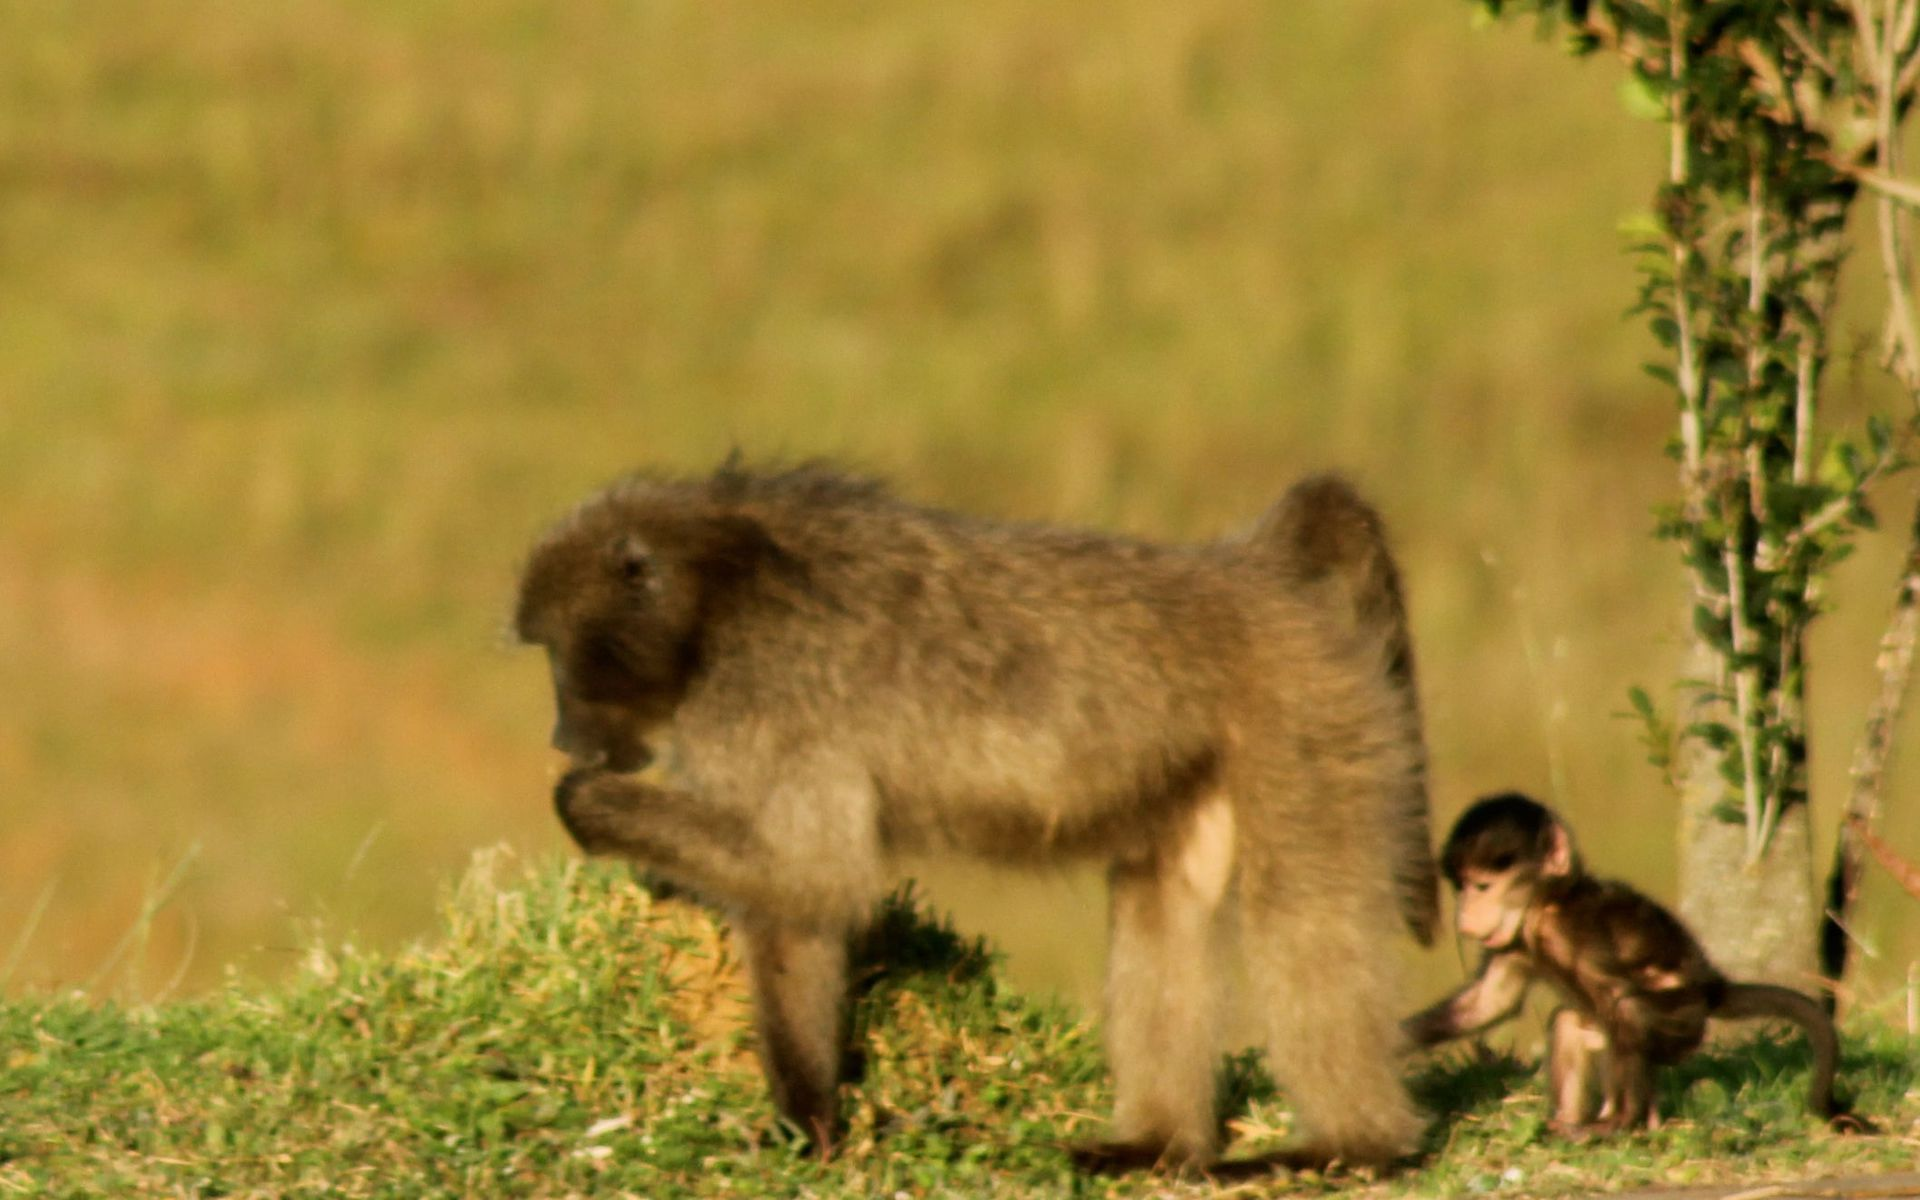 Mother baboon and baby together in South Africa